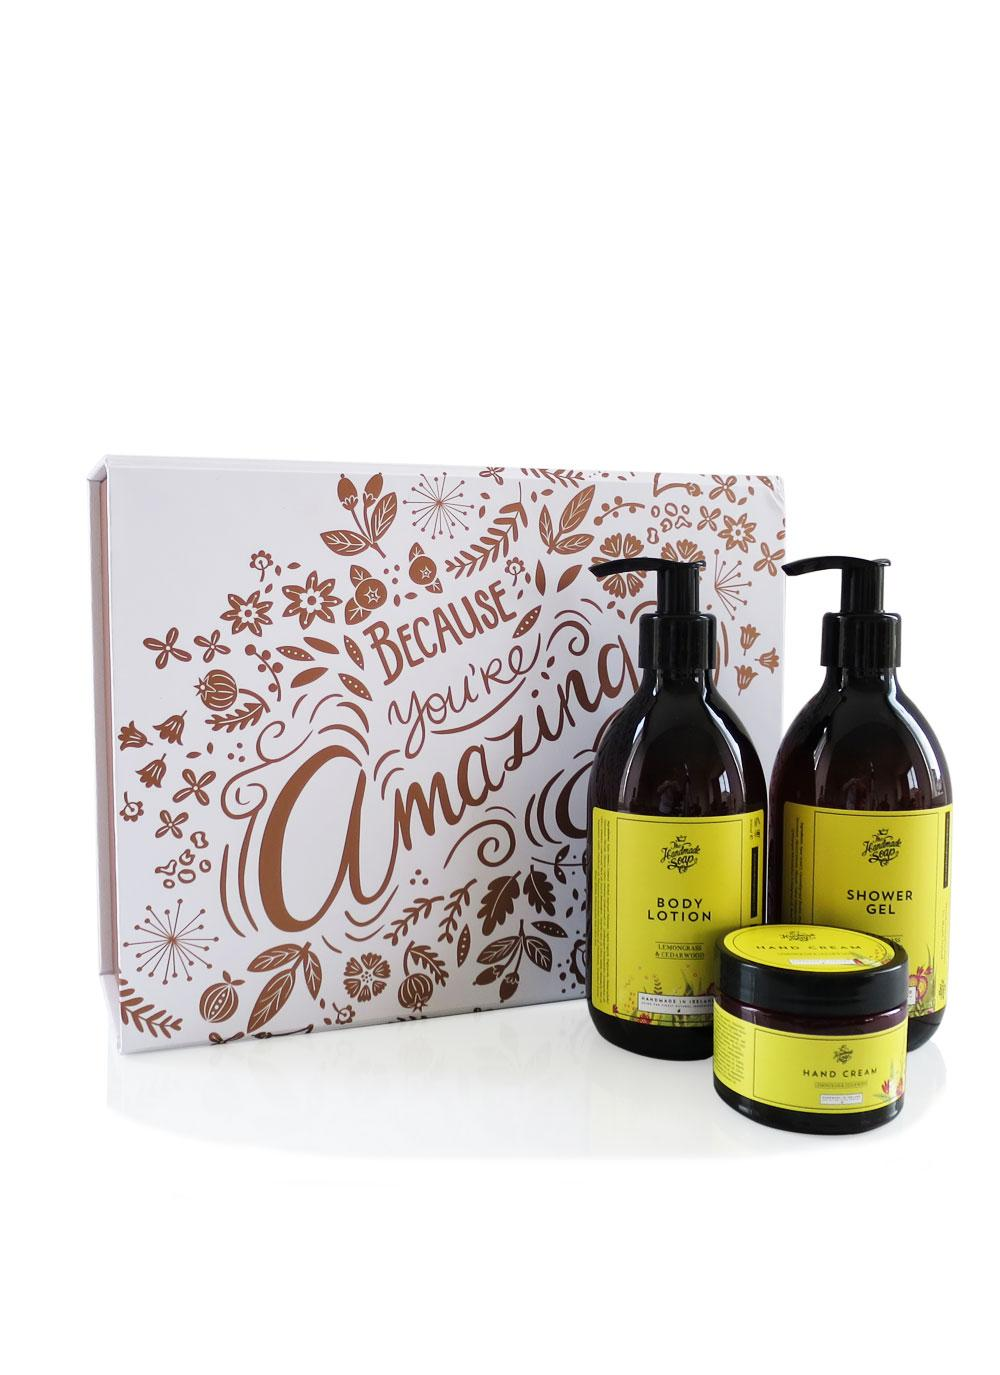 Handmade Soap Company Because You're Amazing Gift Set